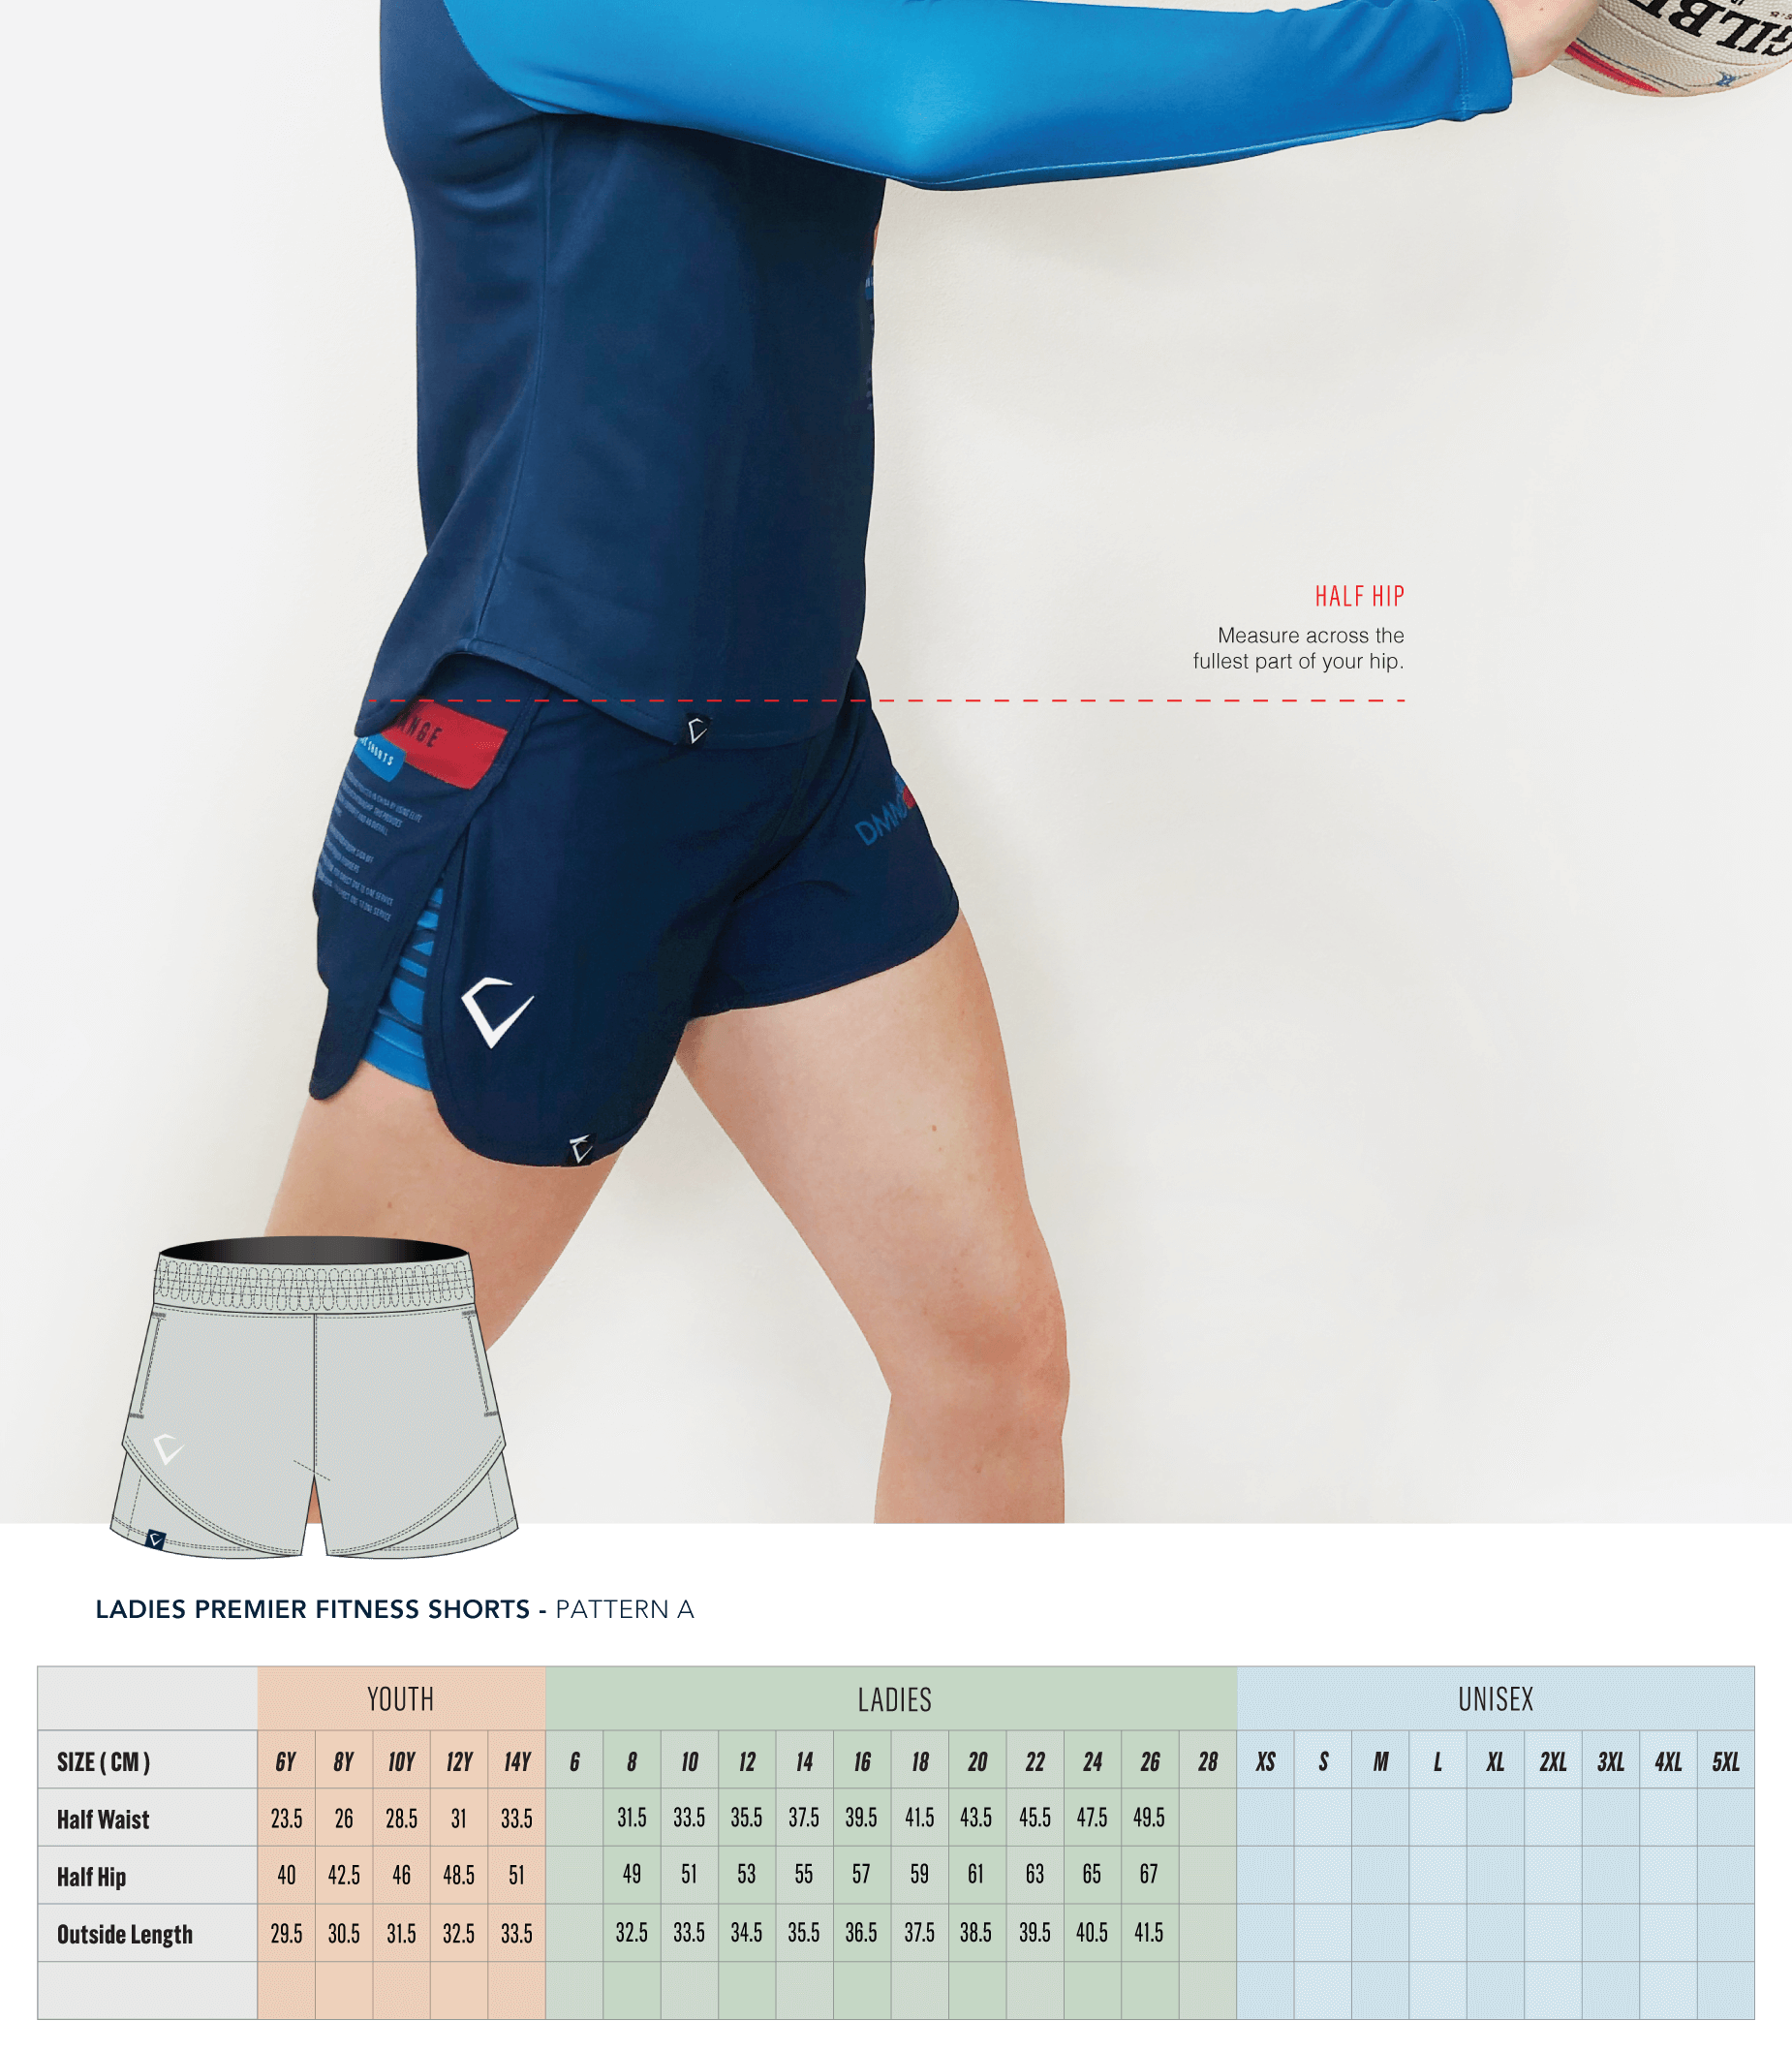 Ladies Premier Fitness Shorts Pattern A Size Guide